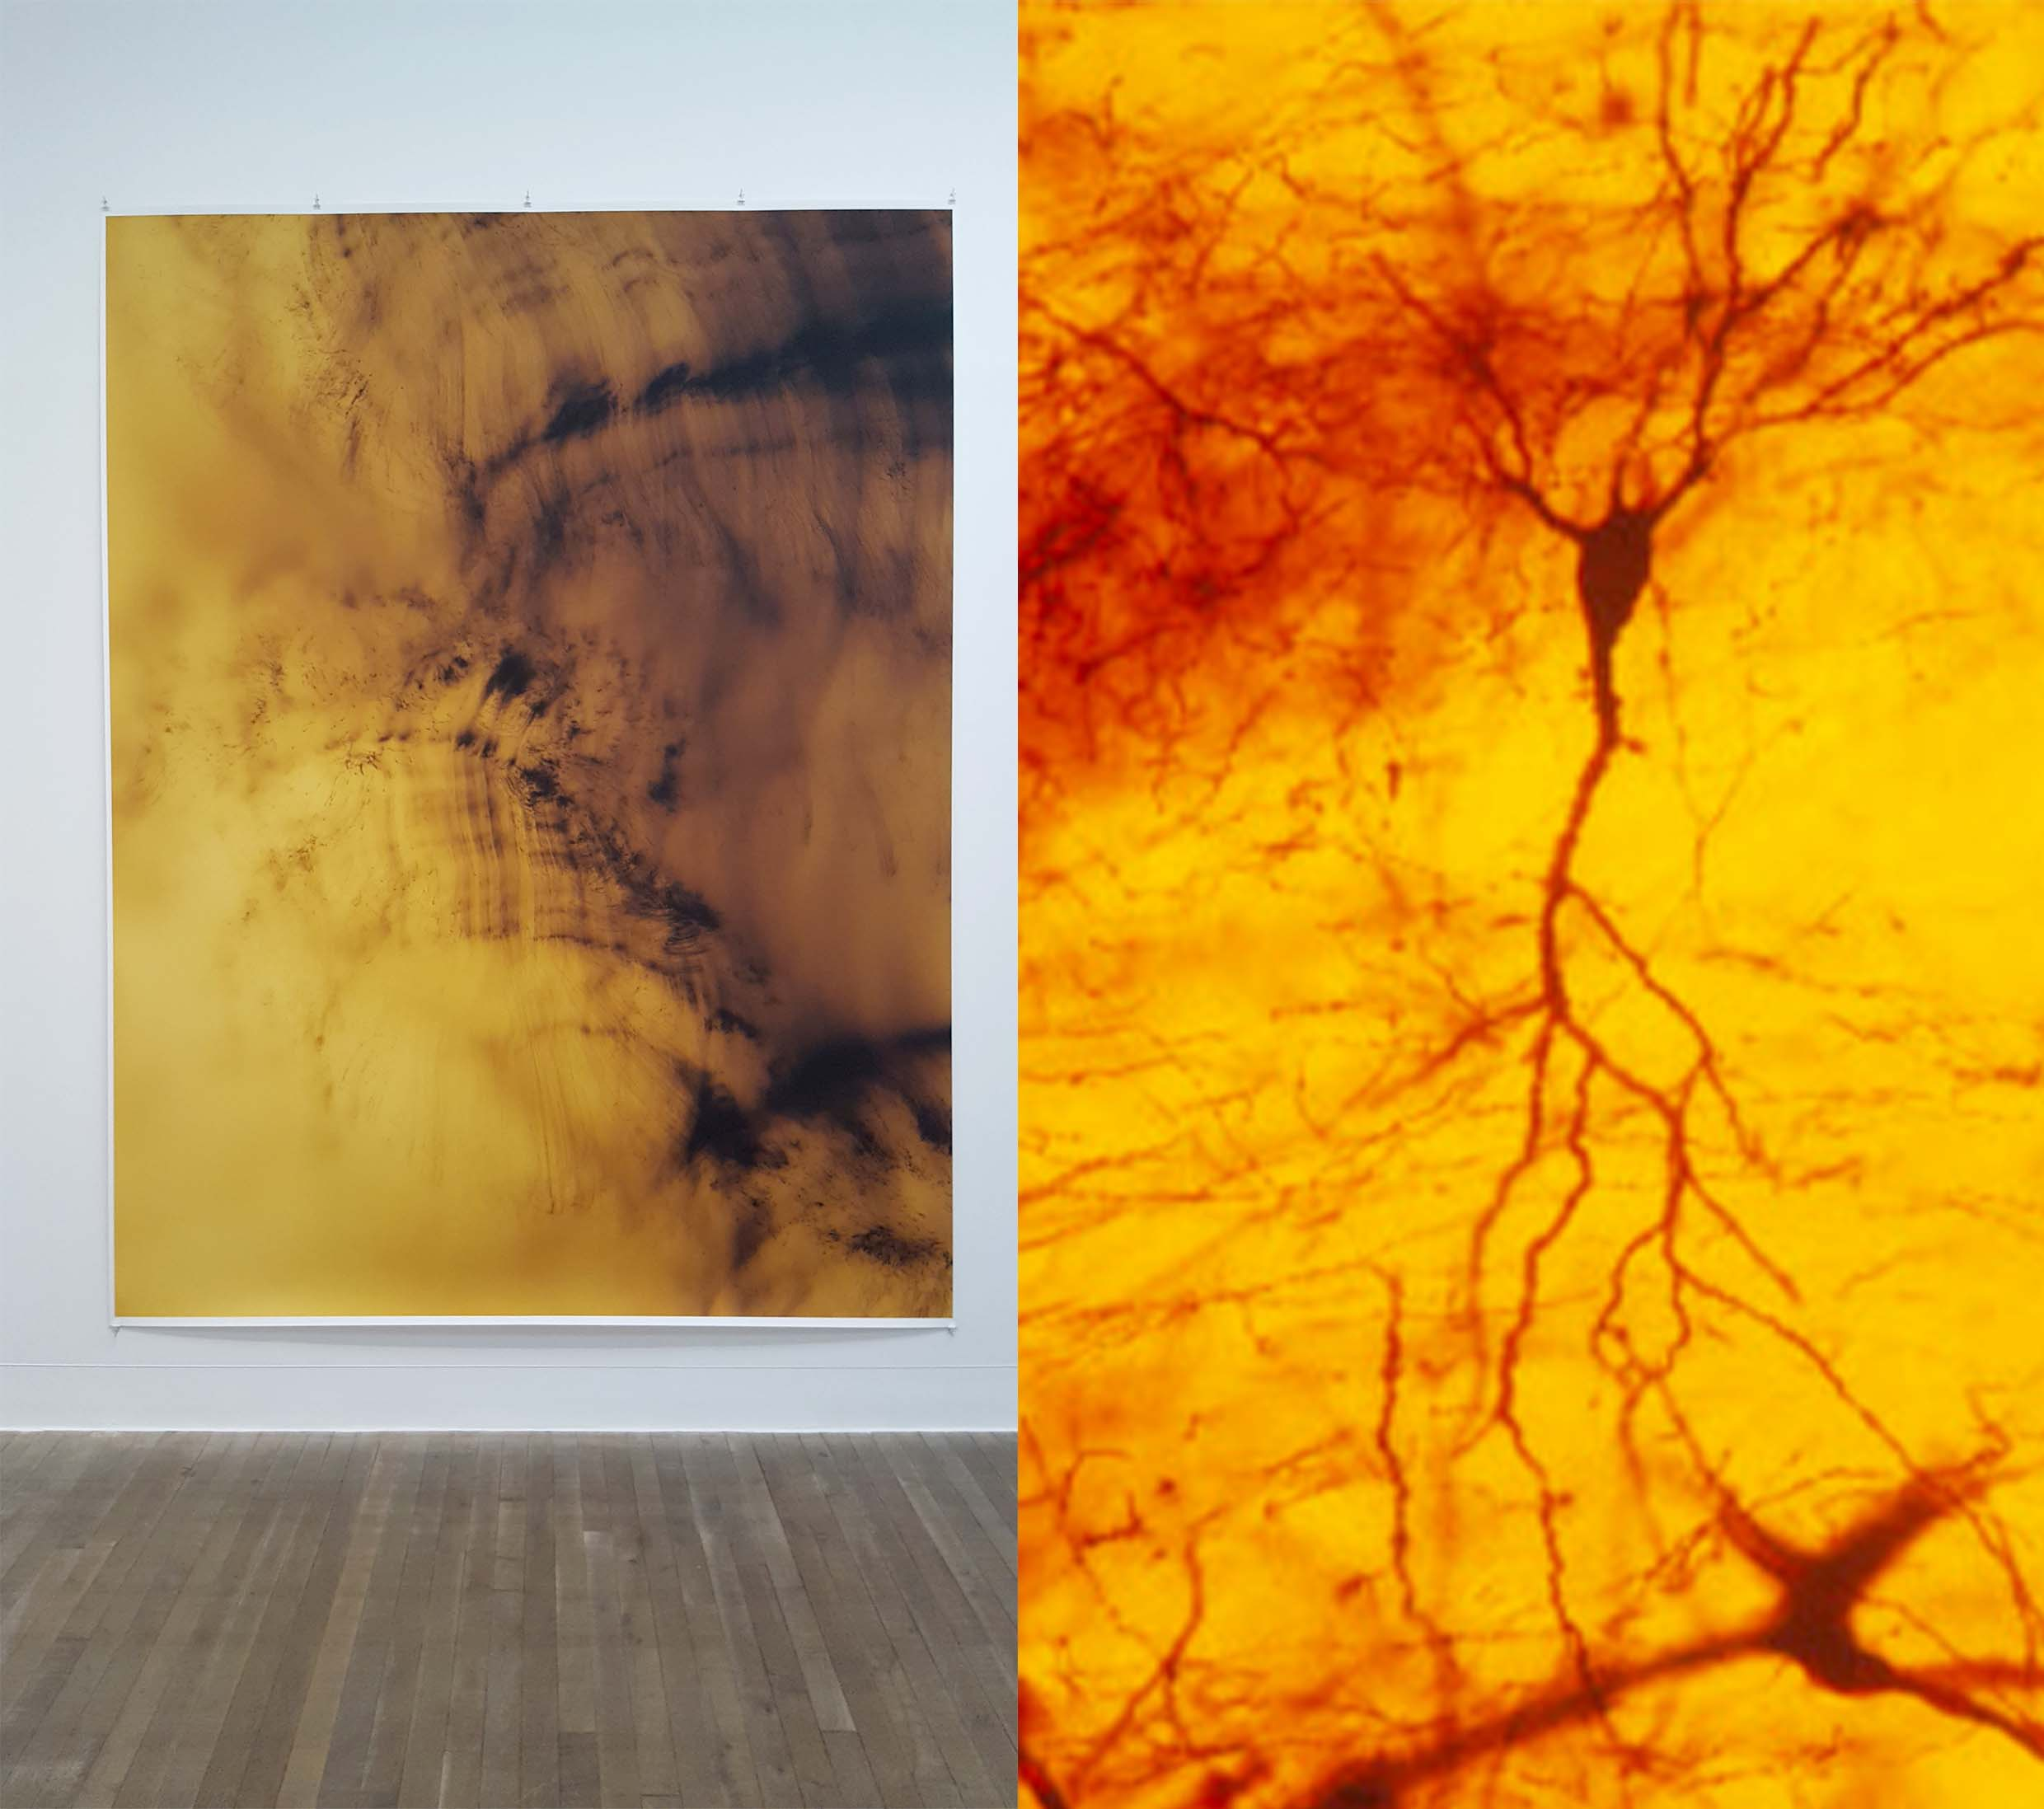 tillmans' abstraction and silver staining of a neuron for comparison